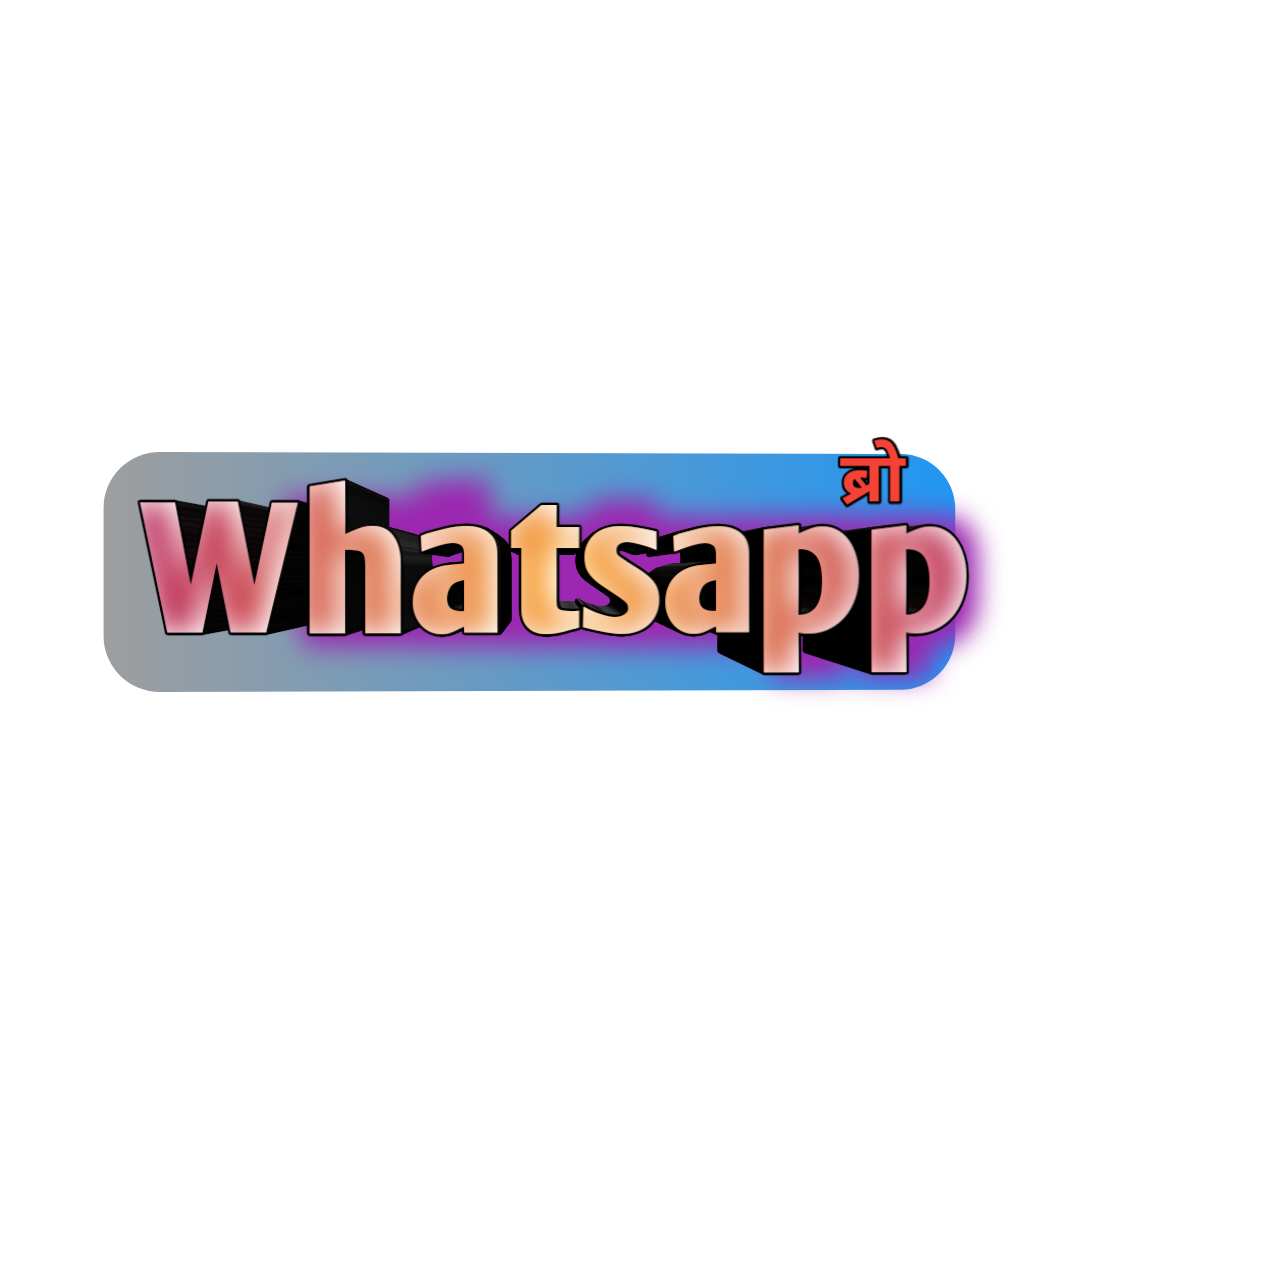 whatsappbro